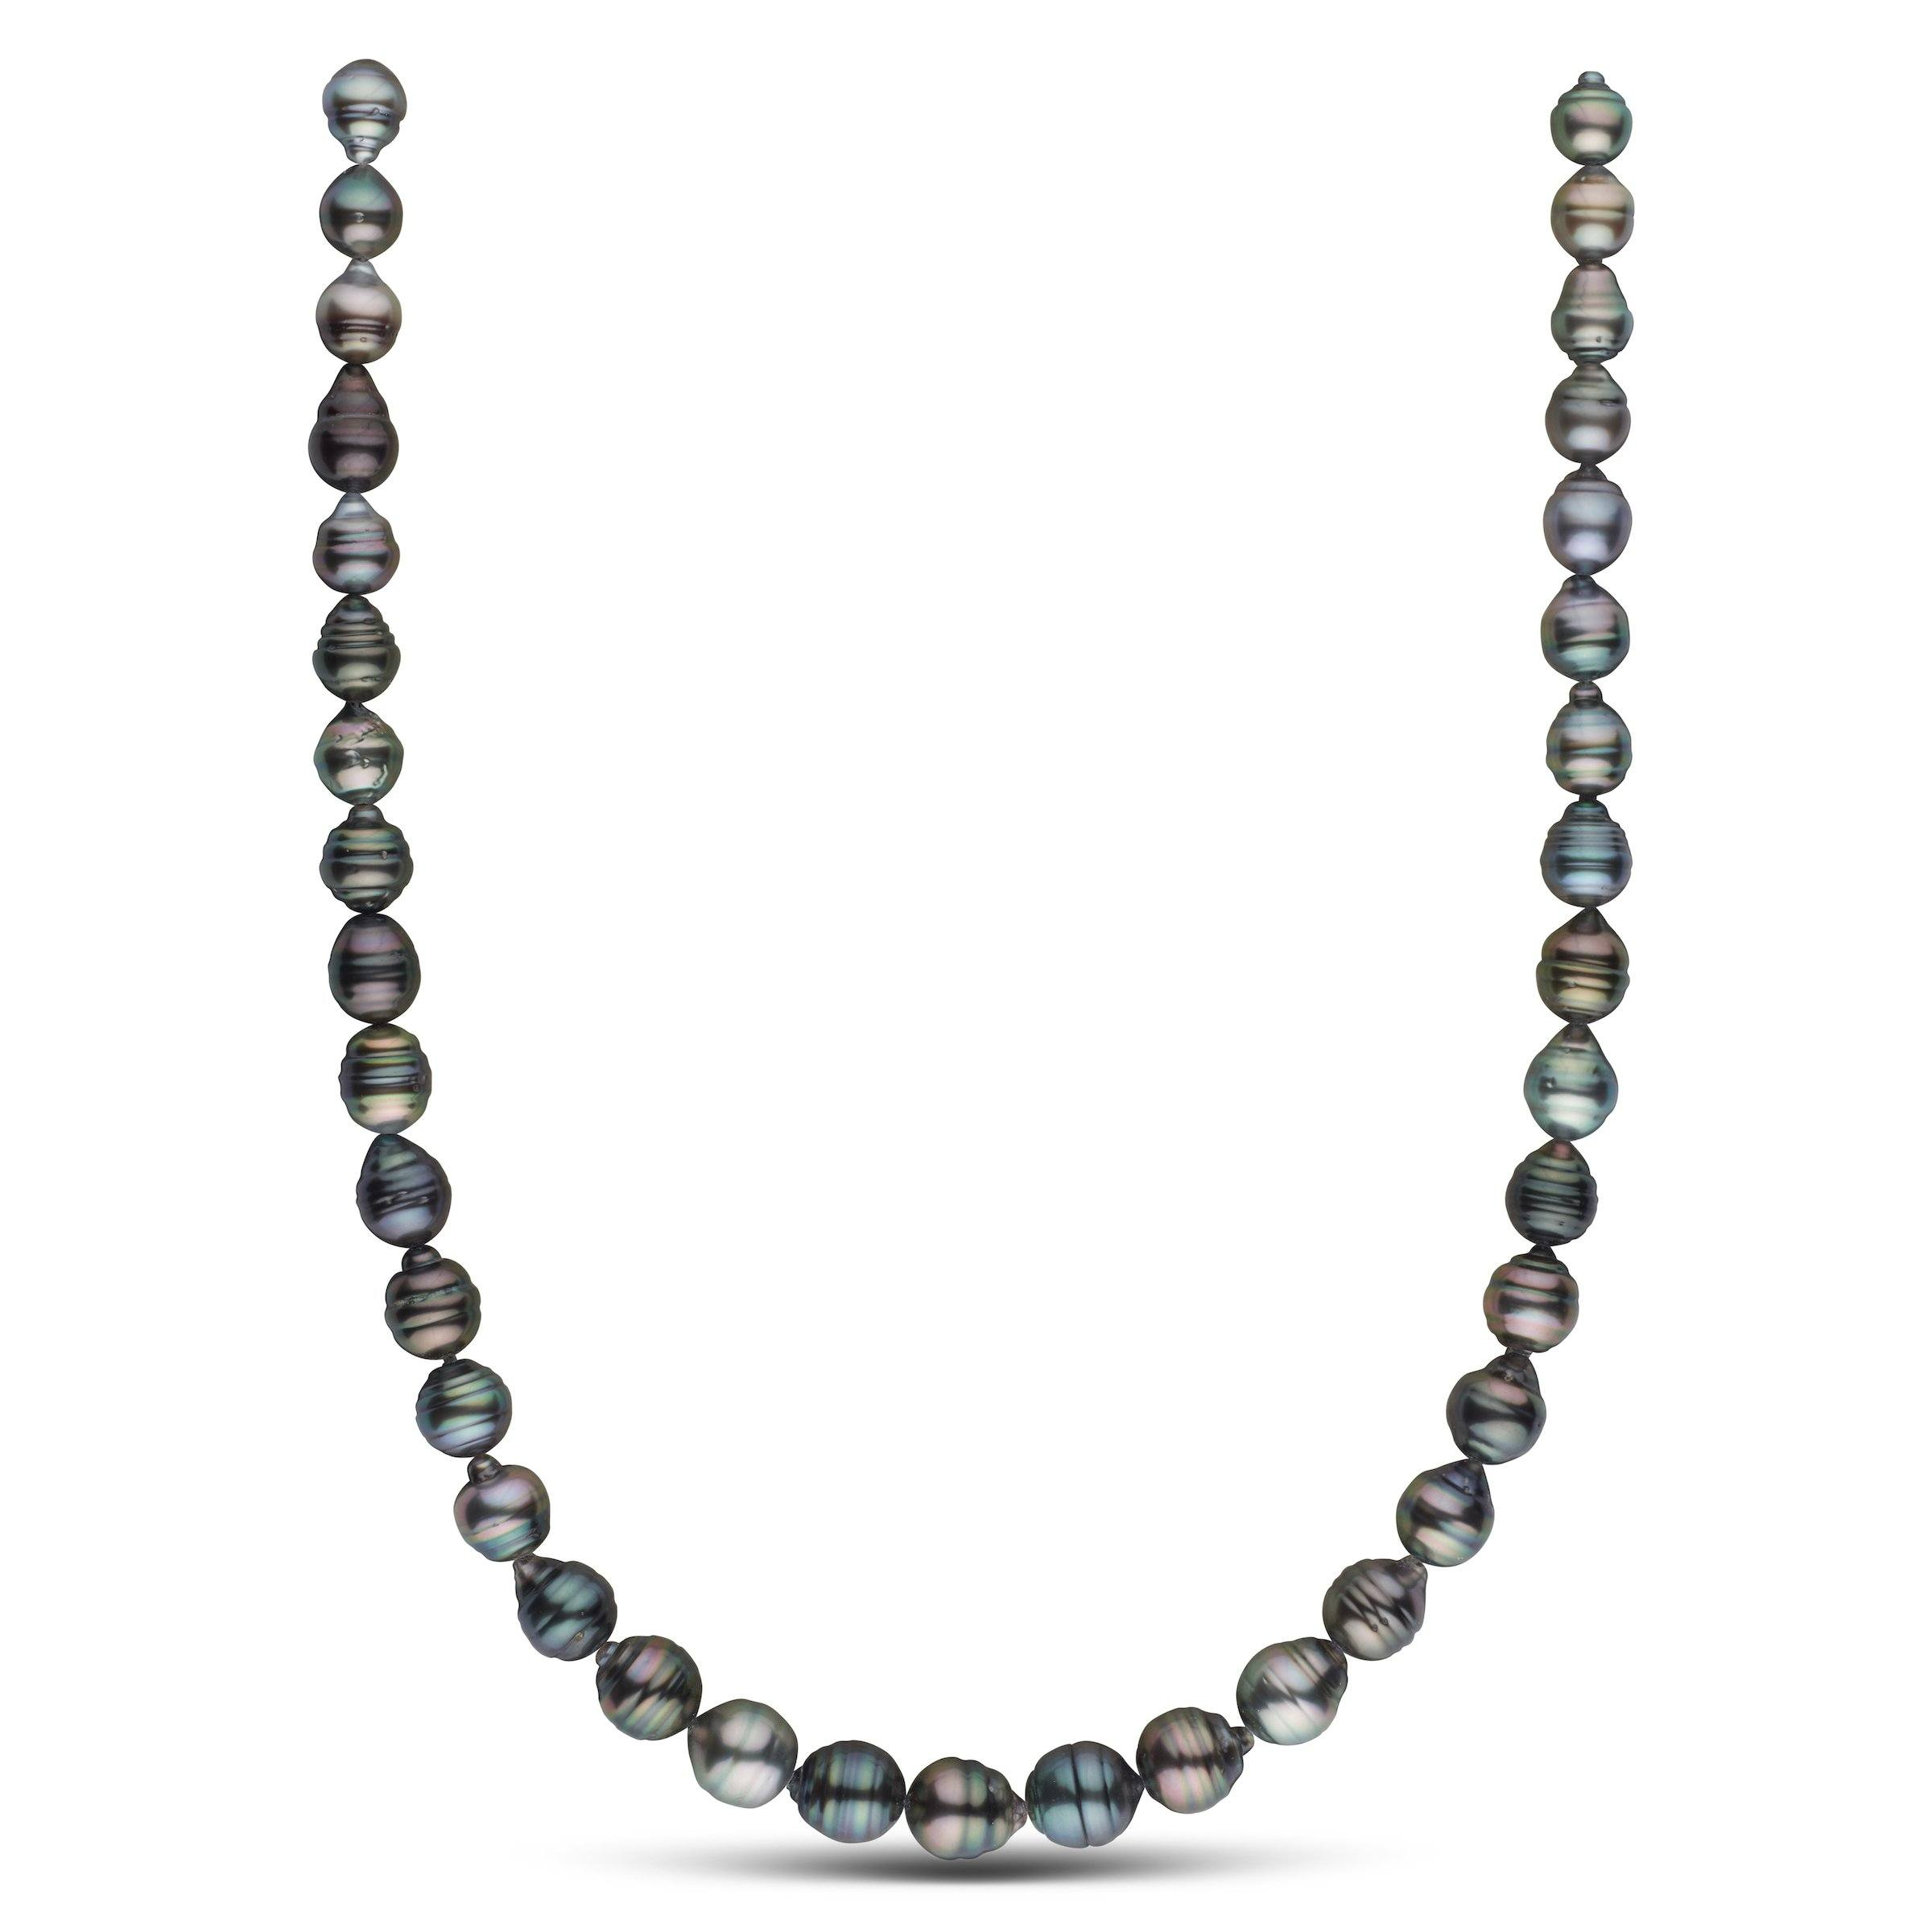 8.3-10.5 mm AA+/AAA Tahitian Baroque Pearl Necklace